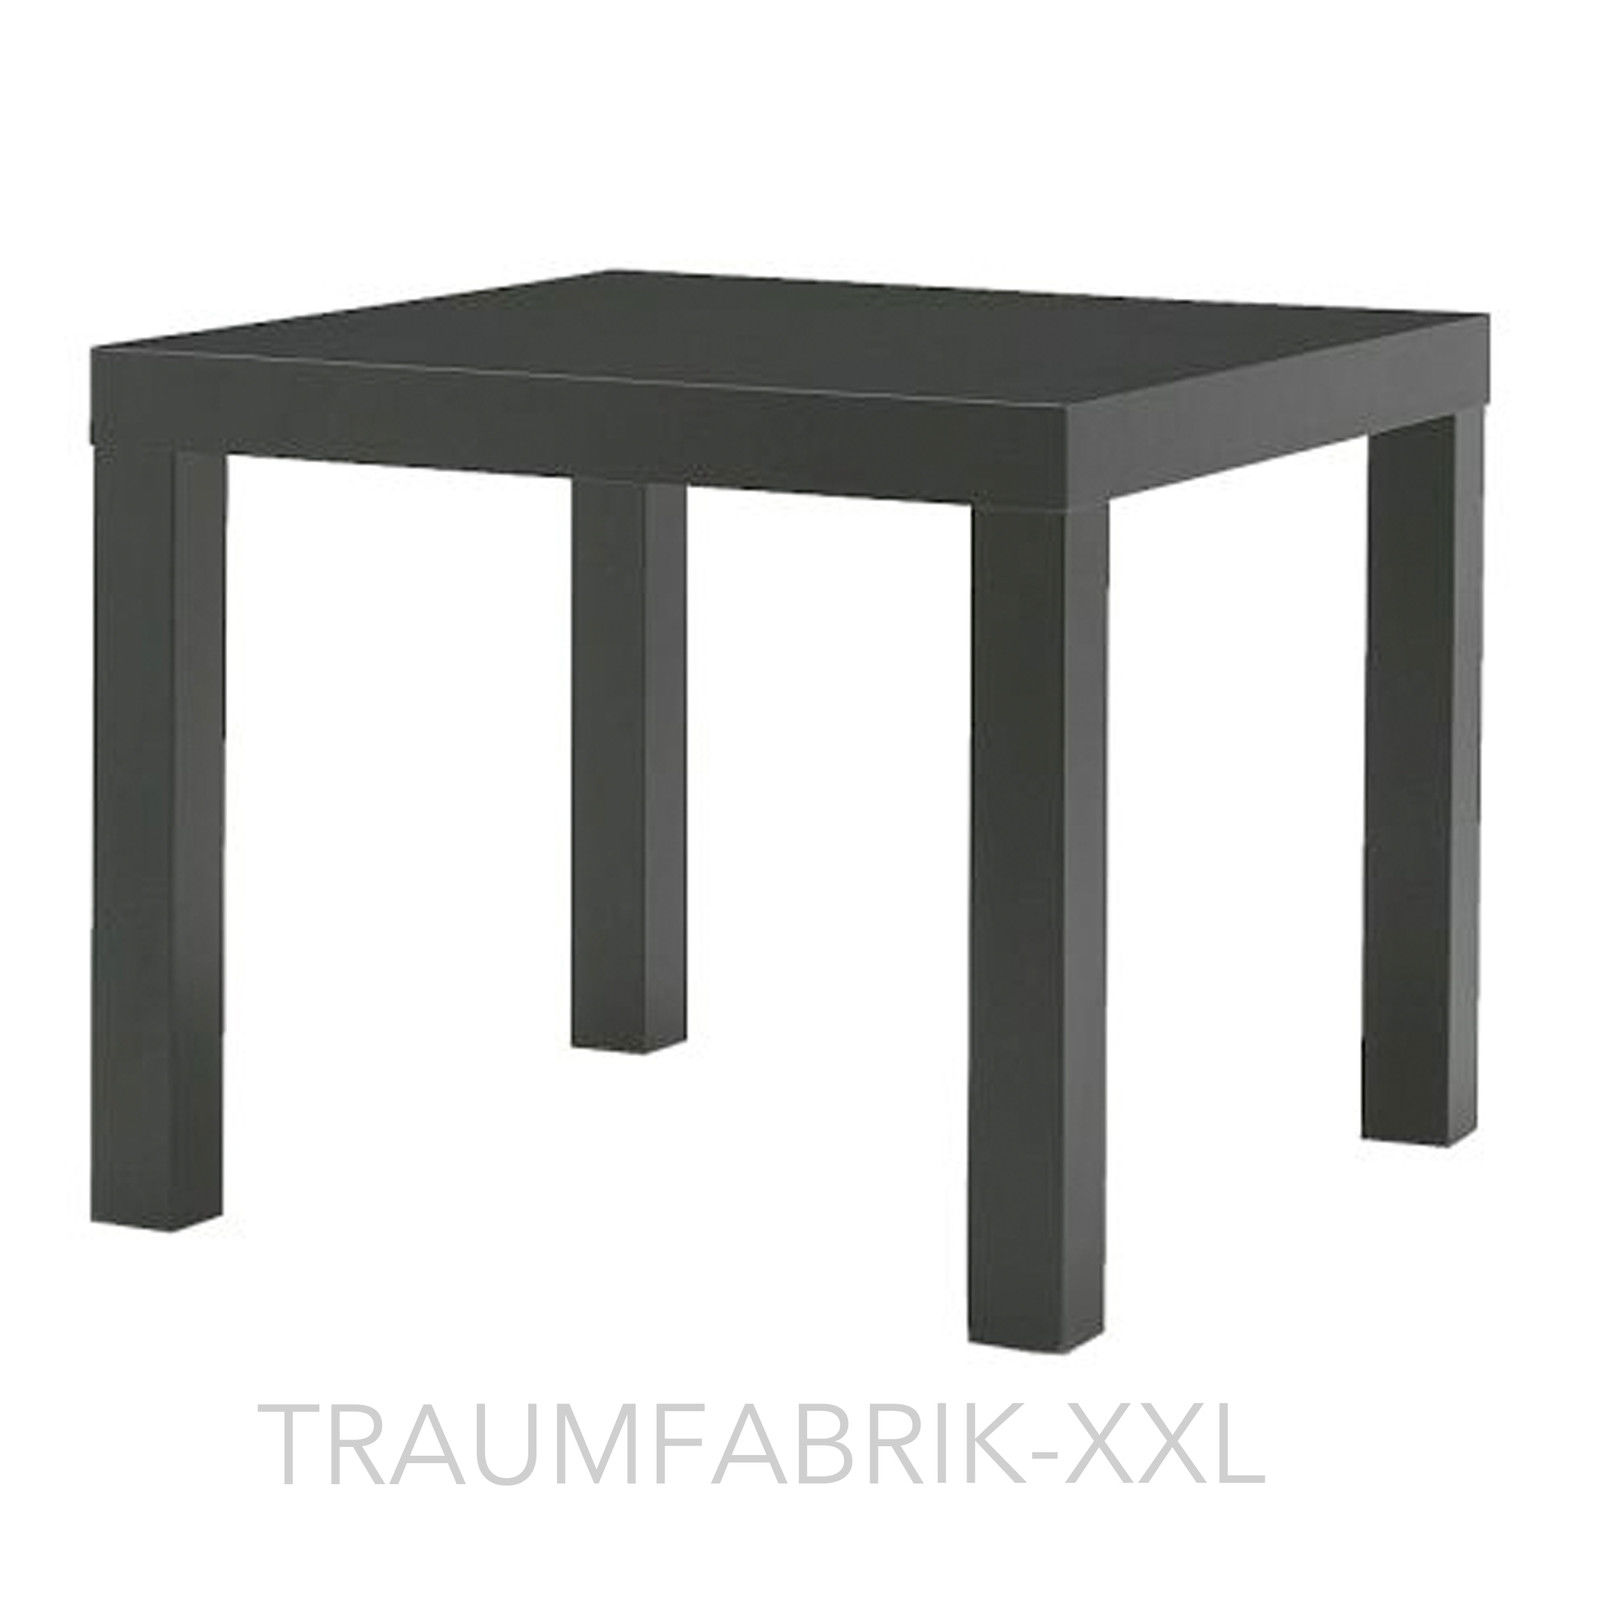 ikea lack beistelltisch schwarz couchtisch fernsehtisch wohnzimmertisch tisch traumfabrik xxl. Black Bedroom Furniture Sets. Home Design Ideas